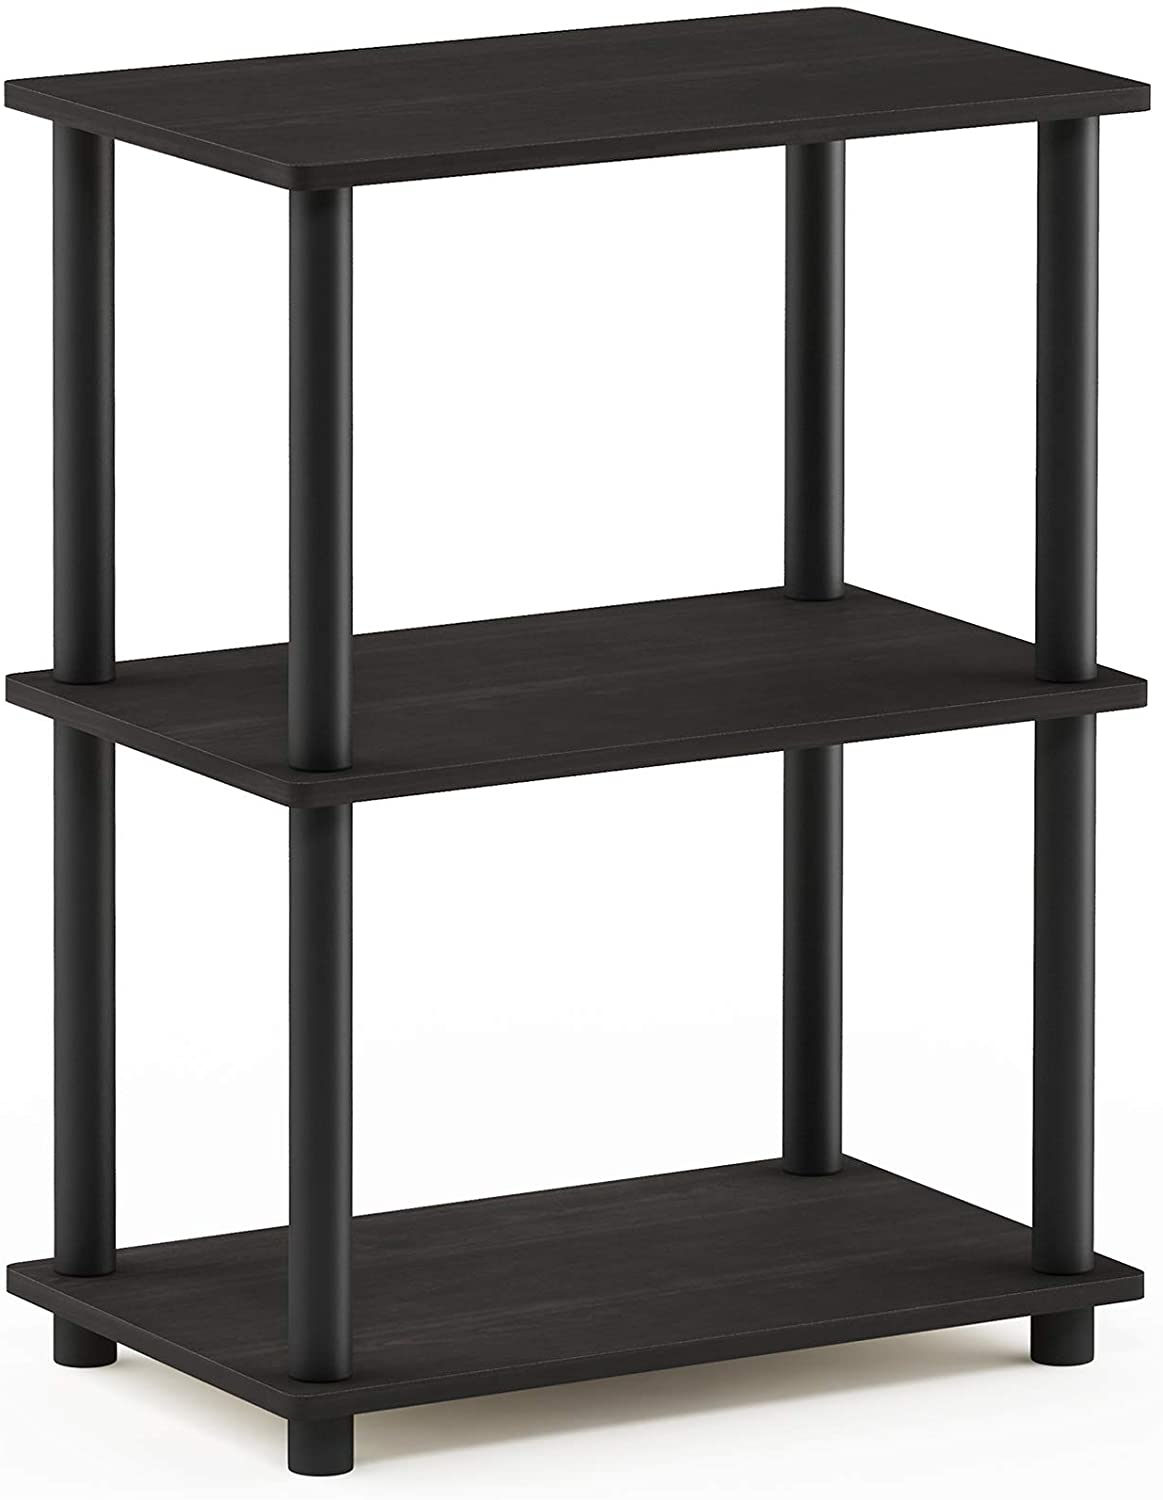 one size Furinno Toolless Shelves Wood Espresso//Black